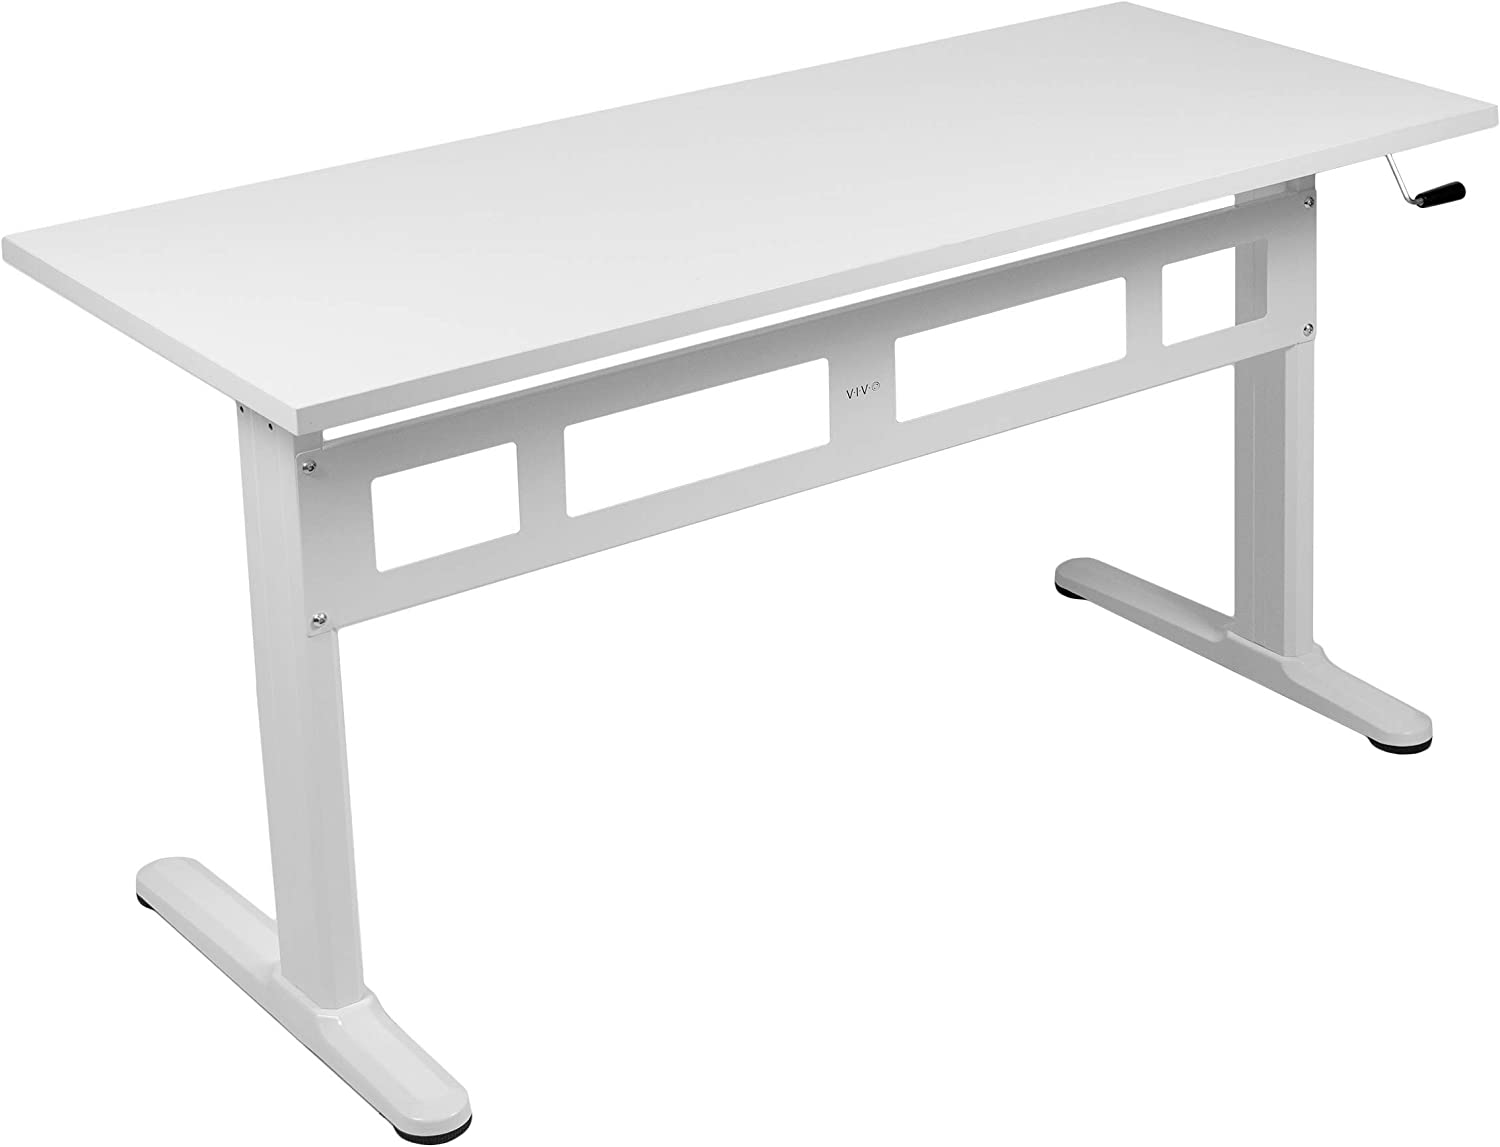 VIVO White Height Adjustable 55 x 24 inch Table Top with Legs | Complete Sit Stand Desk Workstation with Frame and Desktop (DESK-V100MW)